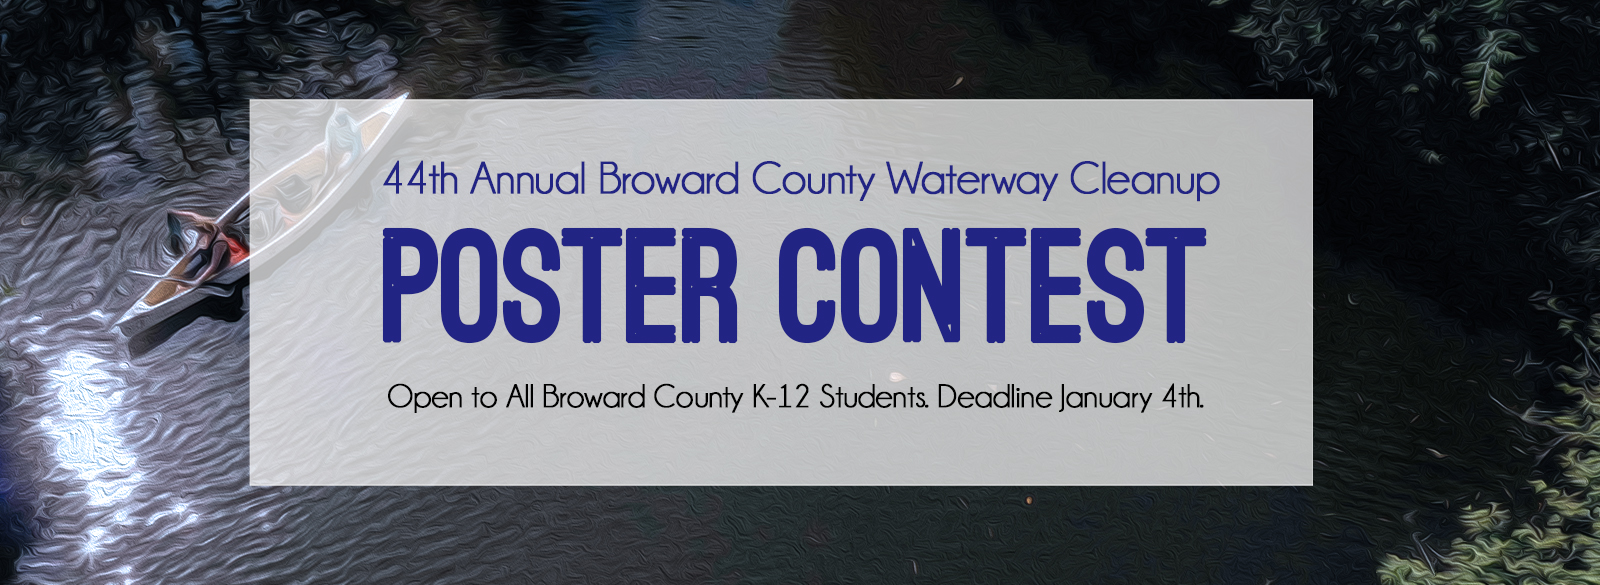 Waterway Cleanup Poster Contest